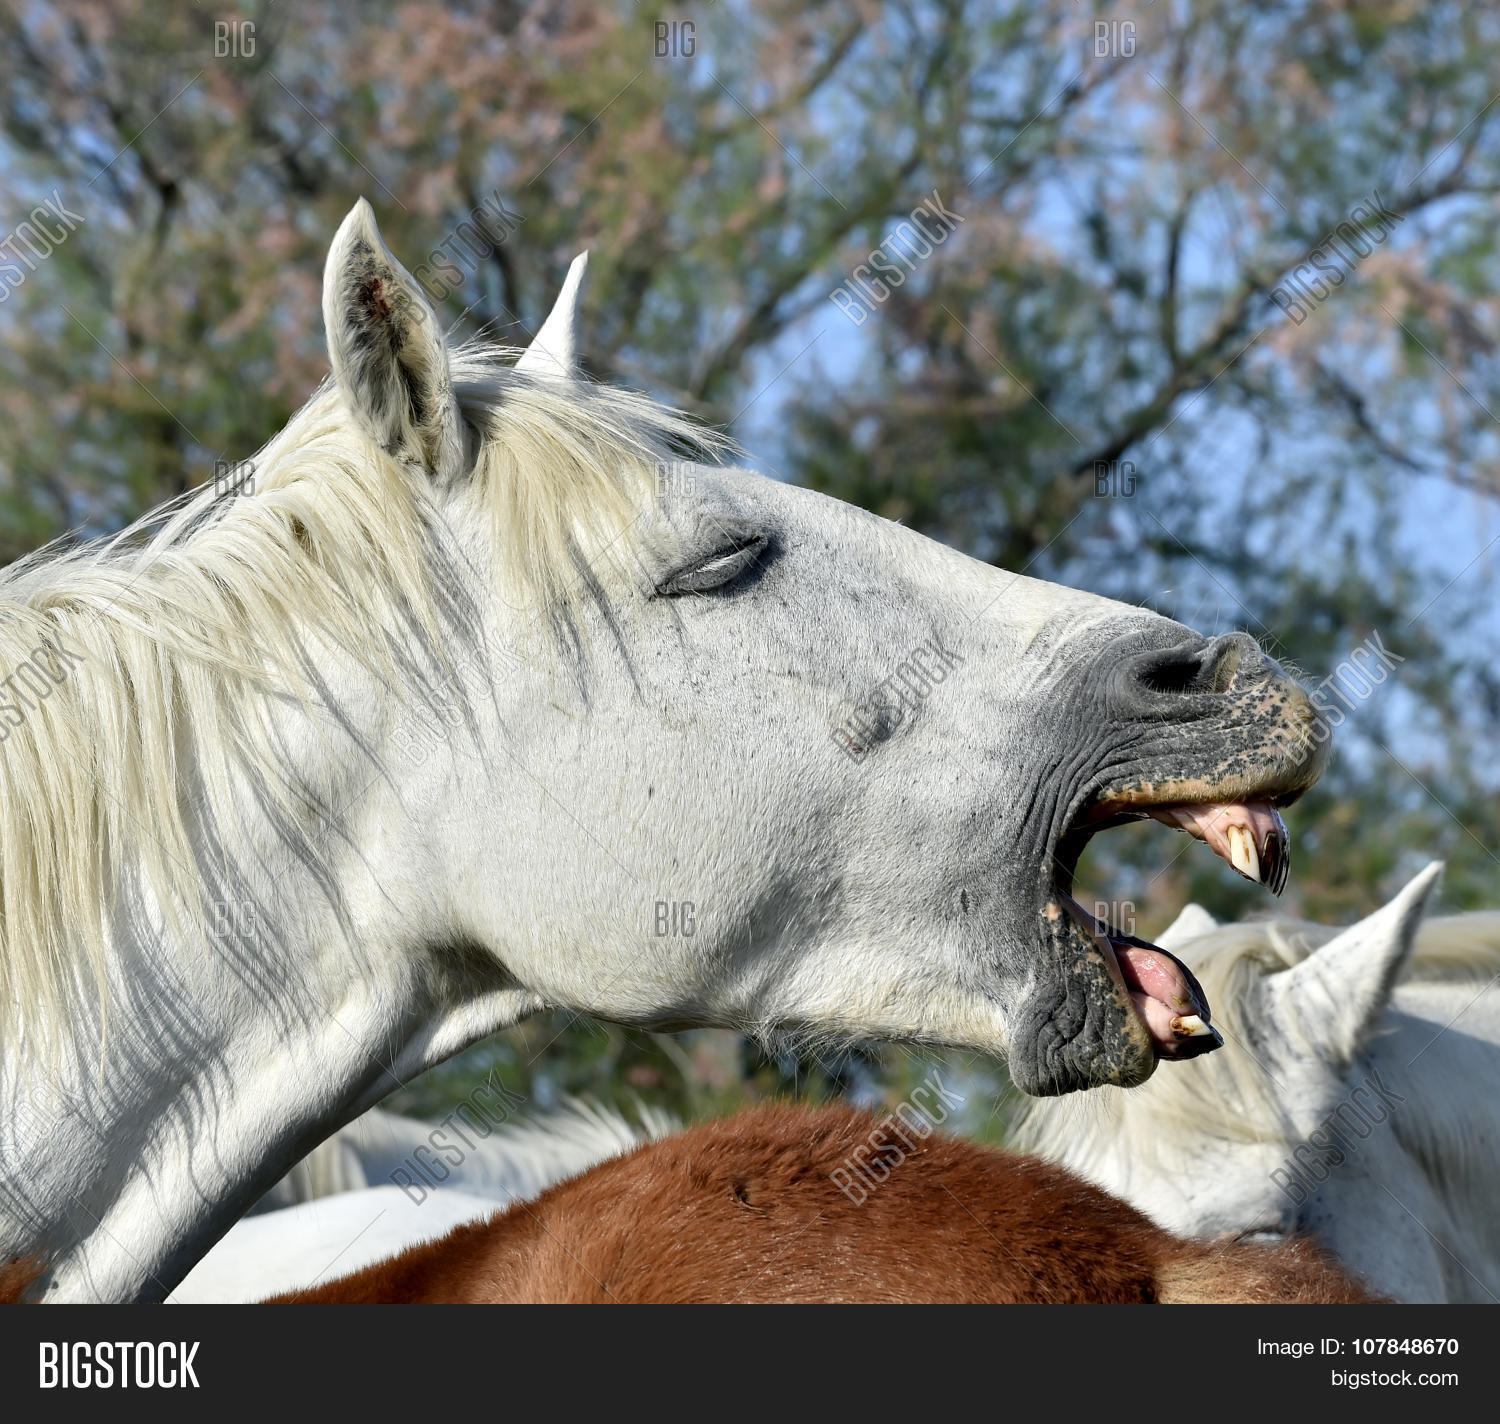 Funny Portrait Of A Laughing Horse 107848670 Image Stock Photo